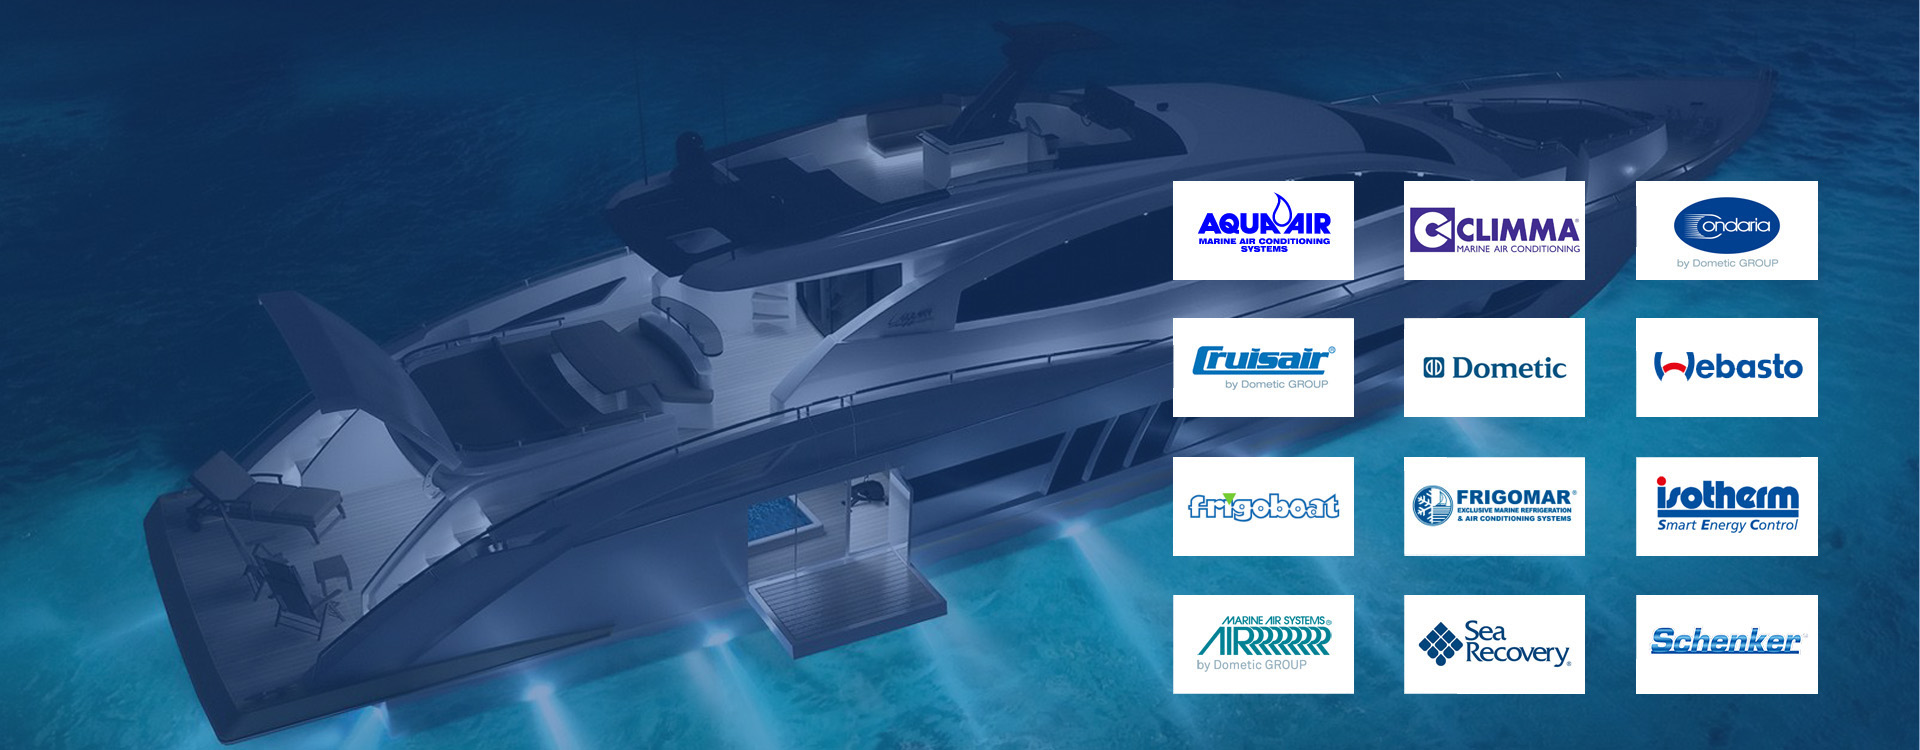 Titan Marine Air Conditioning, Refrigeration & Watermakers